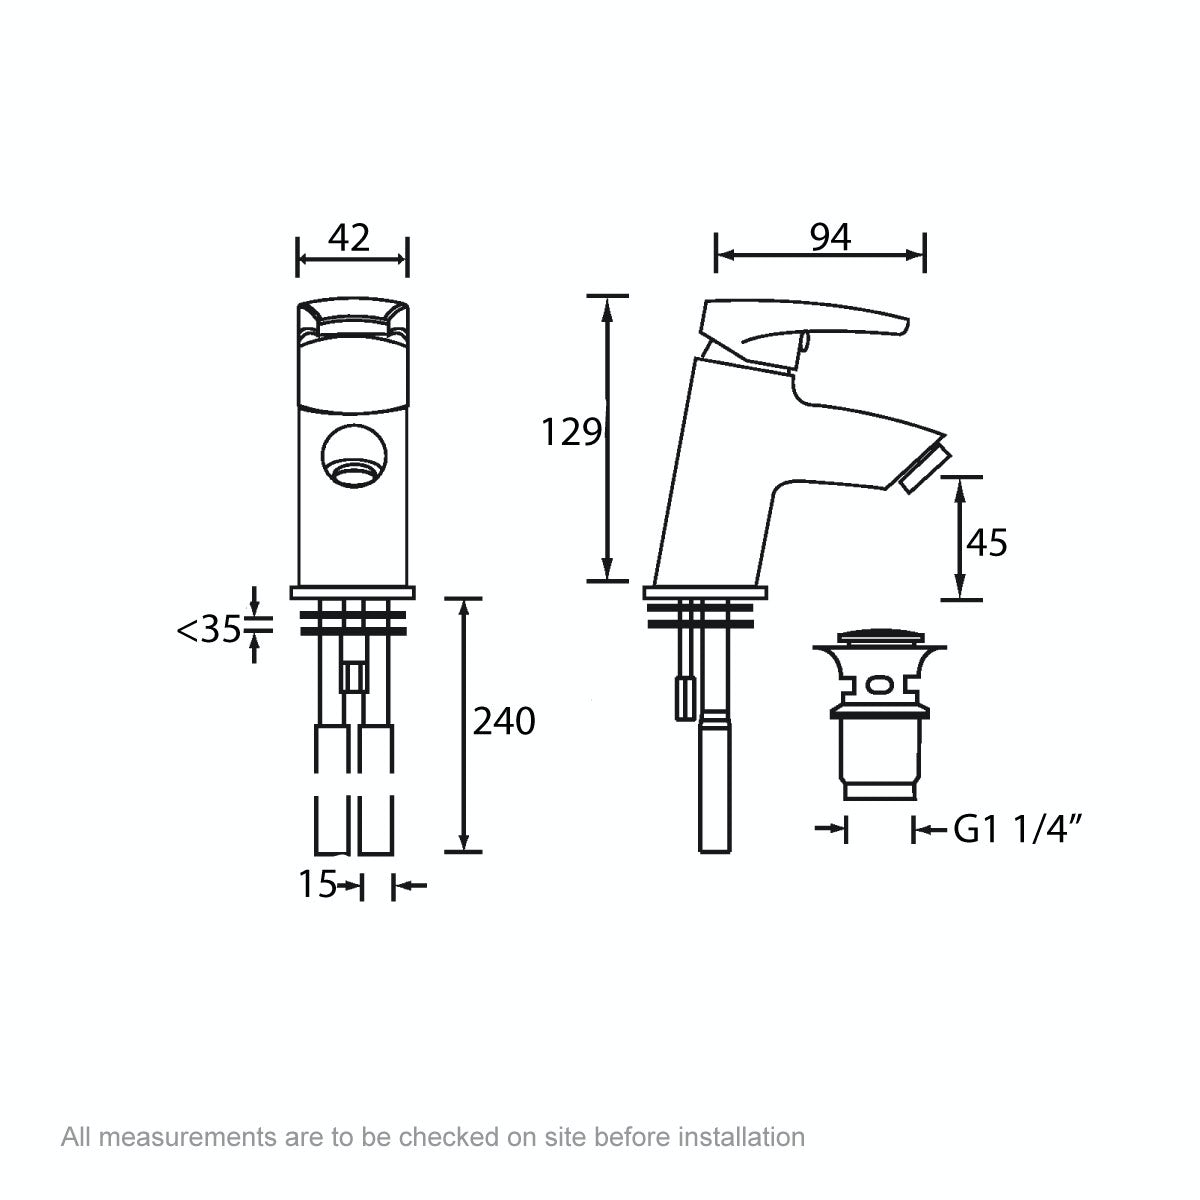 Dimensions for Bristan Orta basin mixer tap with waste